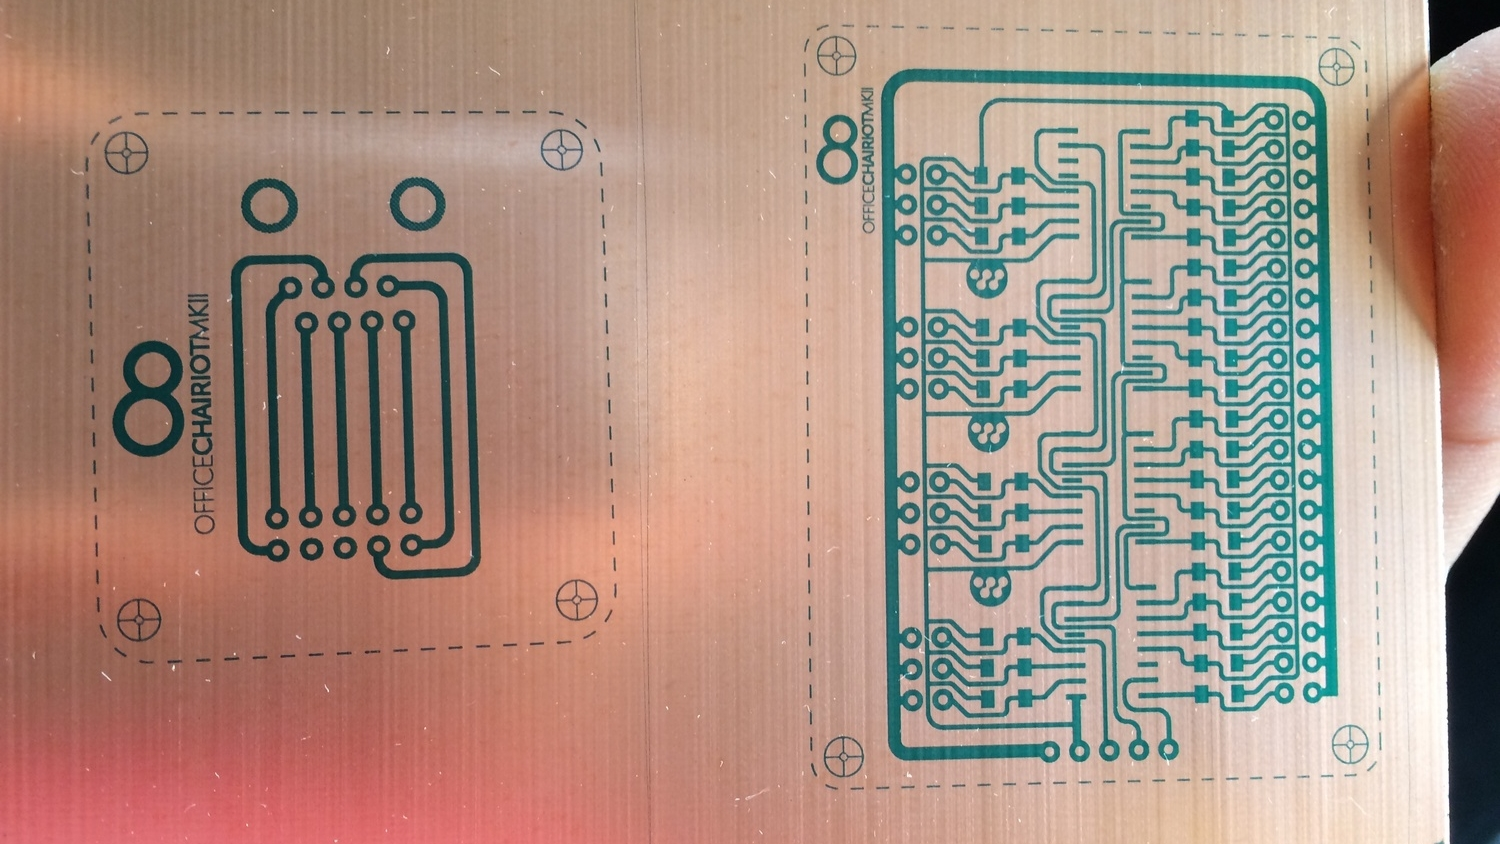 Custom Printed Circuit Boards